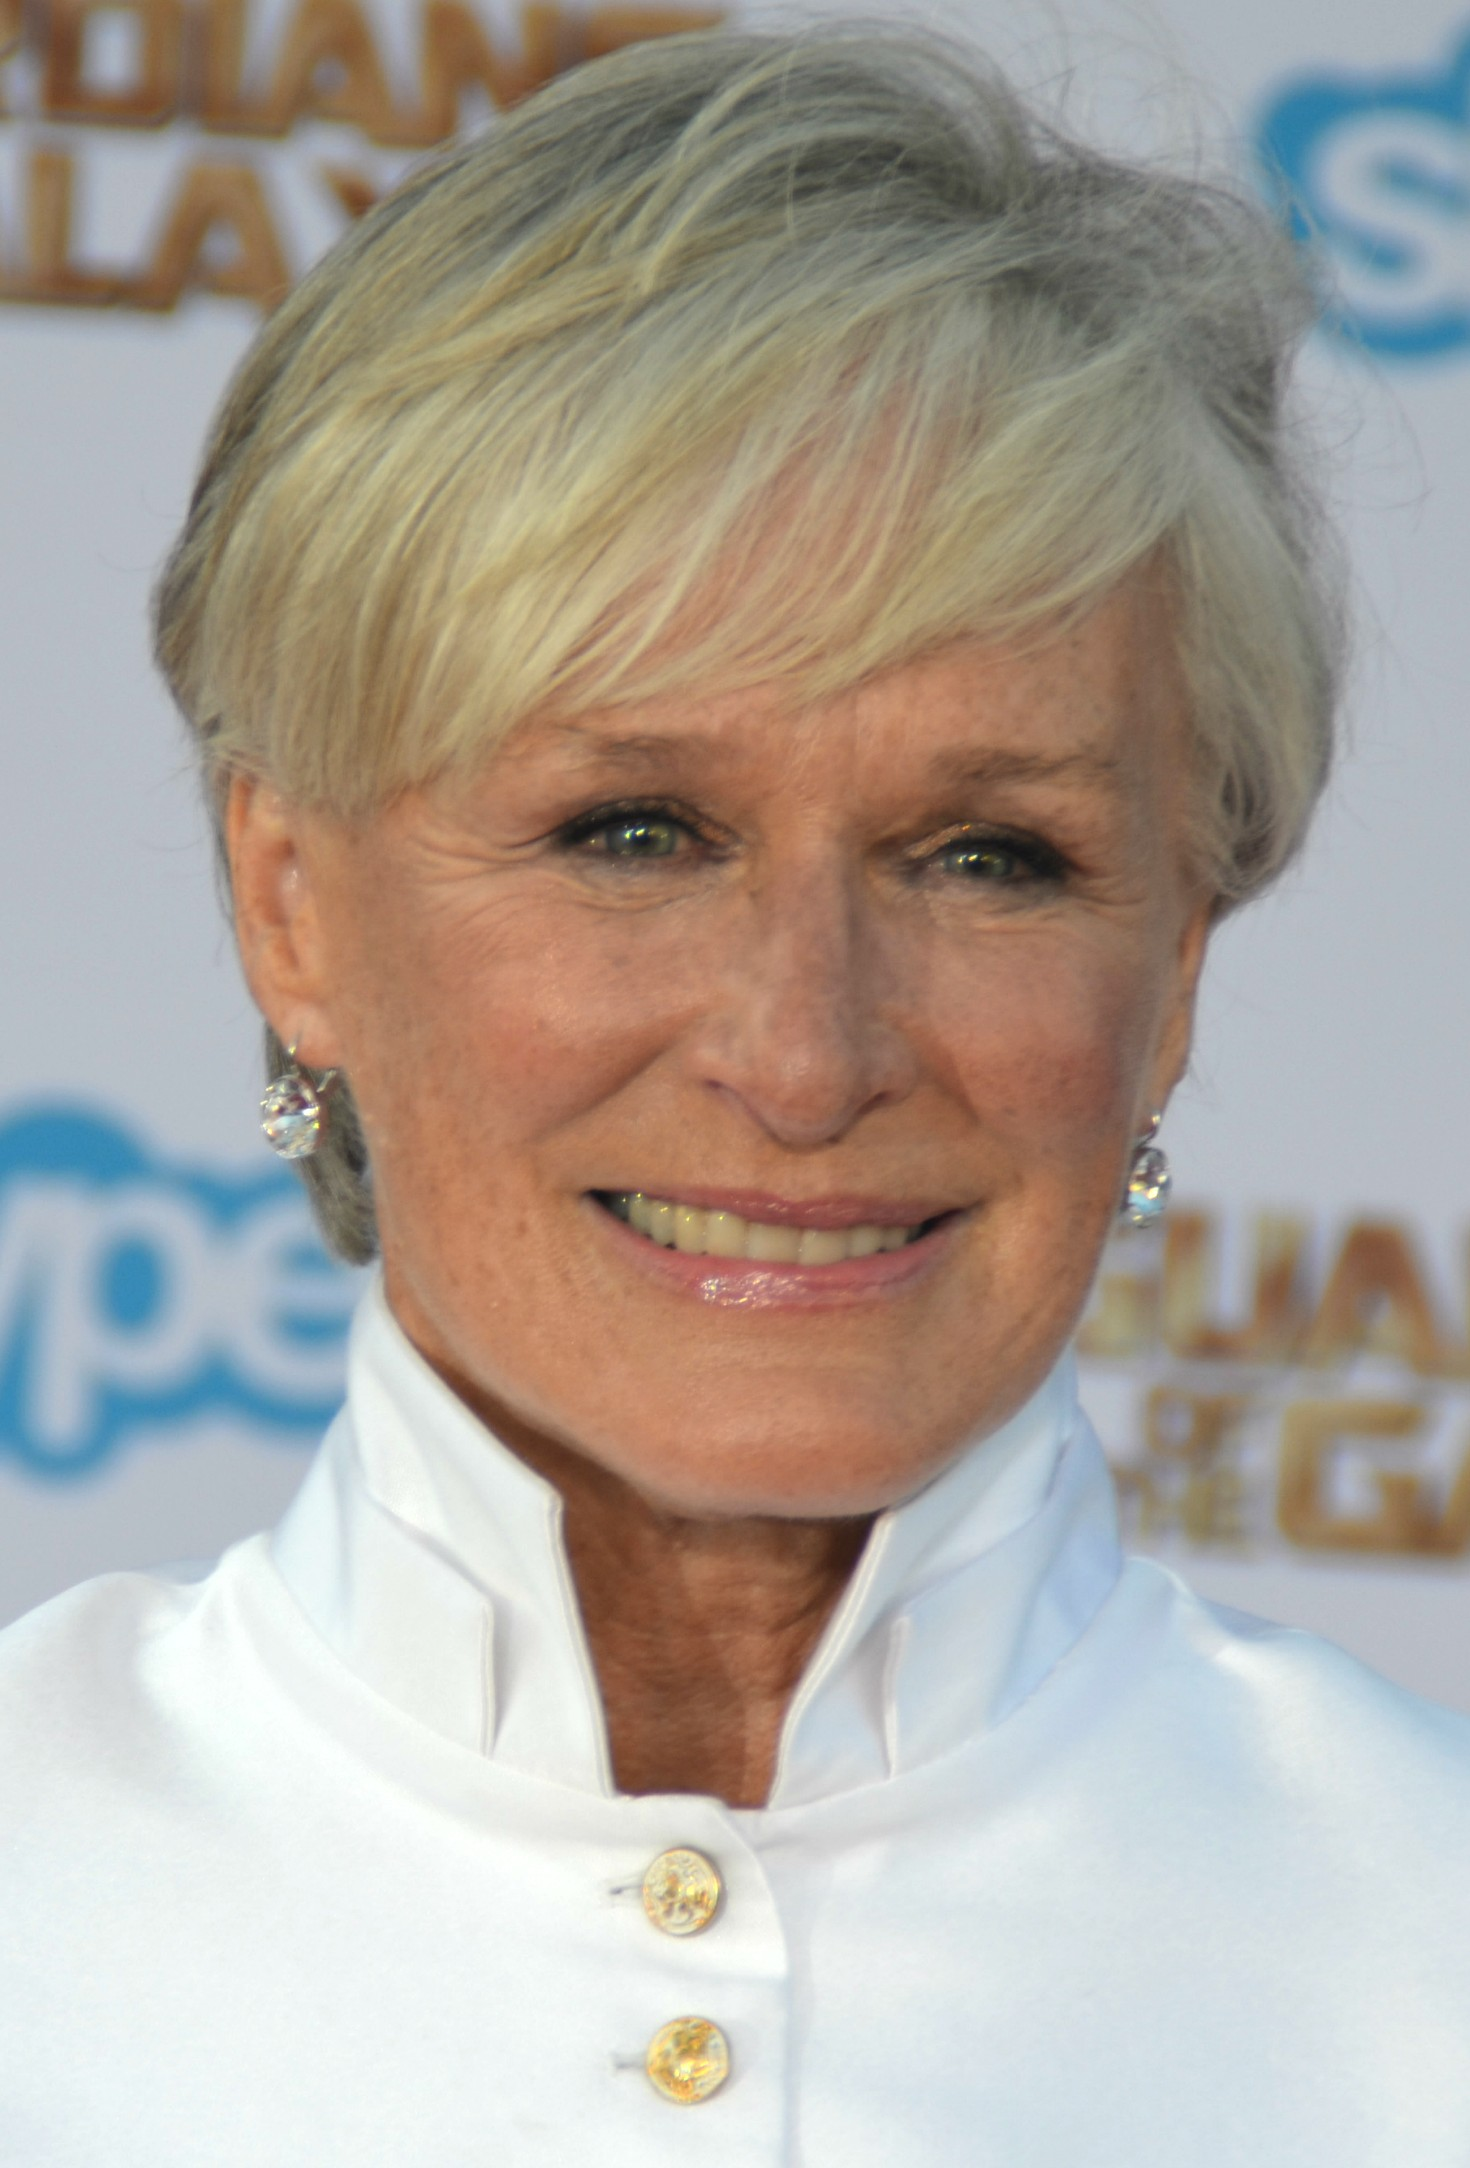 Glenn Close nude photos 2019